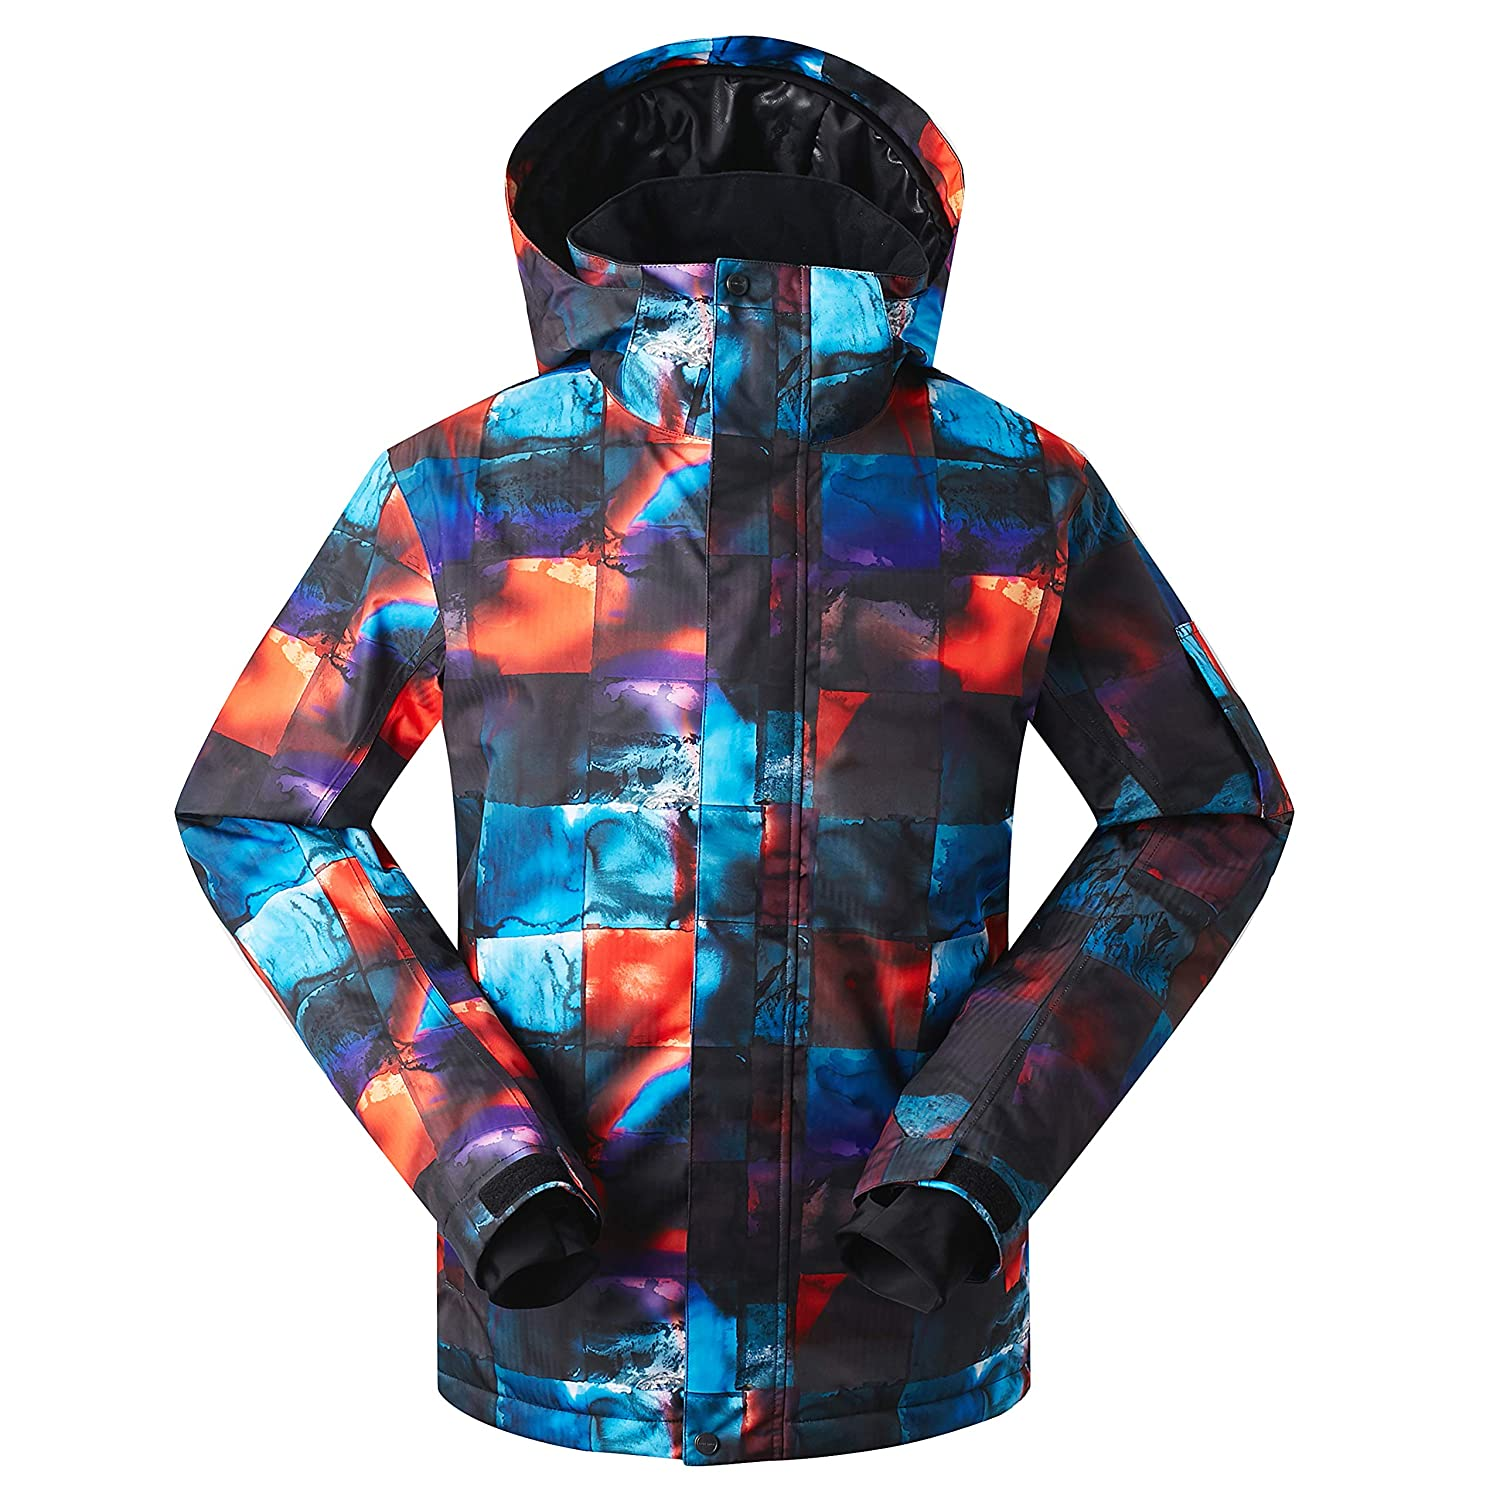 5f6640dc4f Amazon.com  GSOU Snow Men s Ski Jacket Snowboarding Windproof Waterproof  Snow Jacket for Men Insulated Coat for Winter Outdoor Sports  Clothing